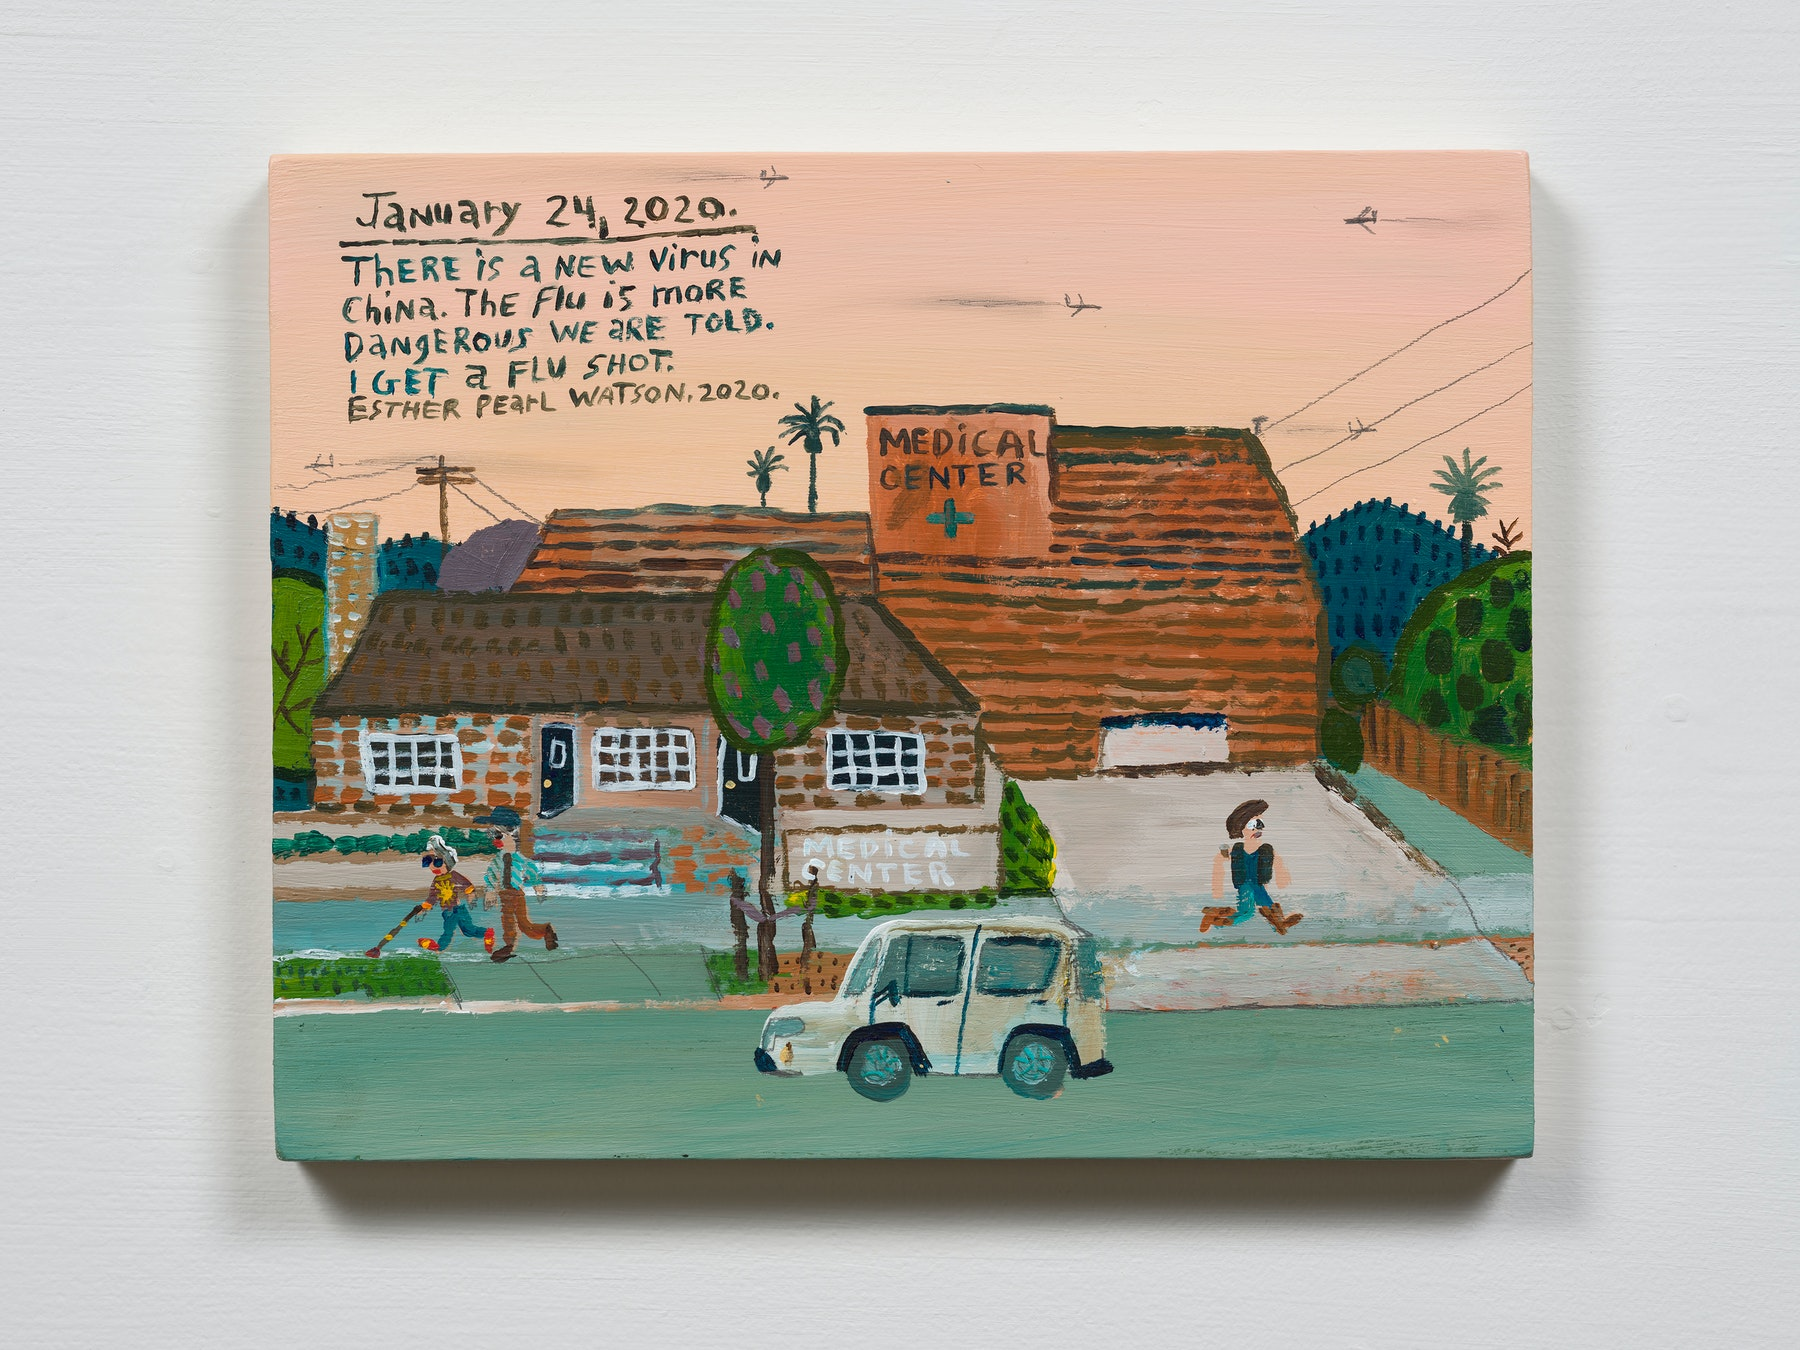 """Esther Pearl Watson """"January 24, There is a New Virus,"""" 2020 Acrylic with pencil on panel 8 x 10"""" [HxW] (20.32 x 25.4 cm) Inventory #EPW230 Courtesy of the artist and Vielmetter Los Angeles Photo credit: Jeff Mclane"""